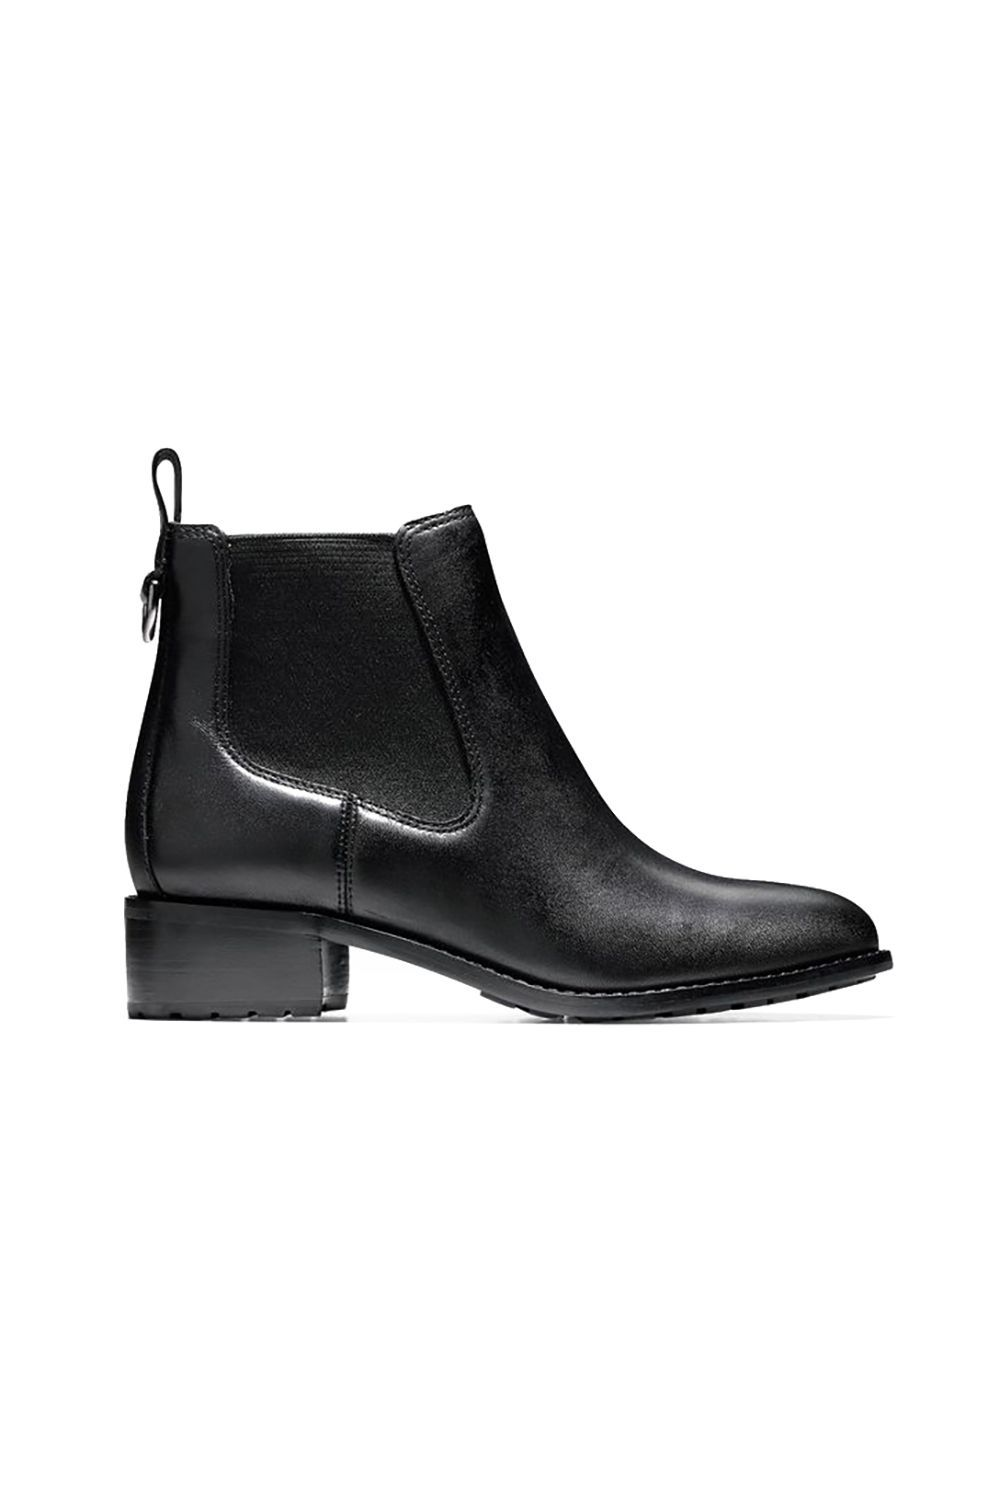 Undercover Rain Boots Cole Haan colehaan.com $200.00 SHOP IT Disguised as an every day patent-leather black bootie, this pair is actually 100 percent waterproof. The April showers might cause your hair to frizz and all ( we have some tips for that ), but at least your style can't be dampened.